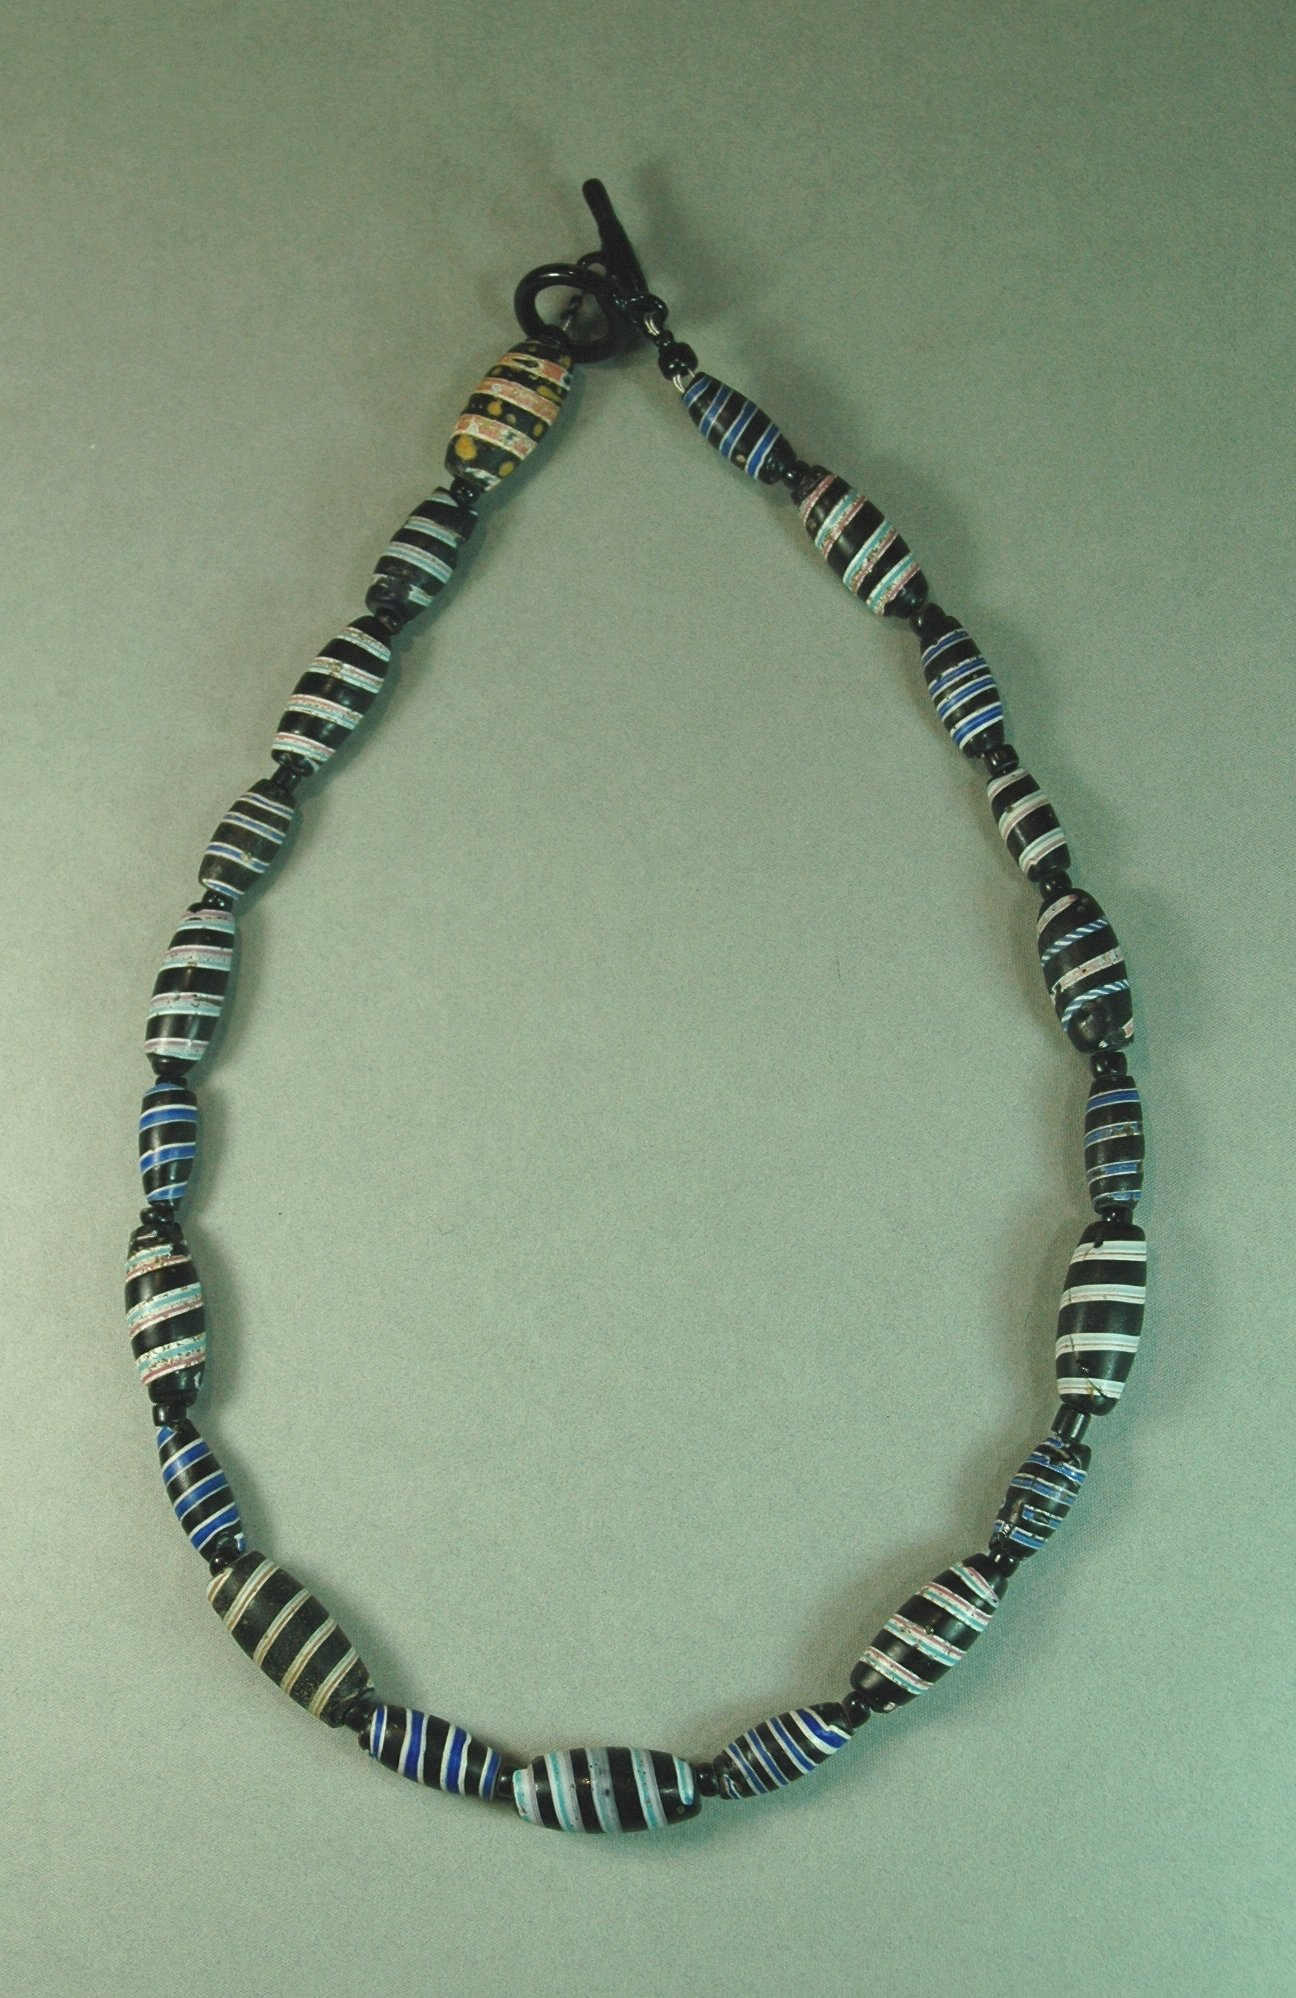 Necklace with beads from Venice